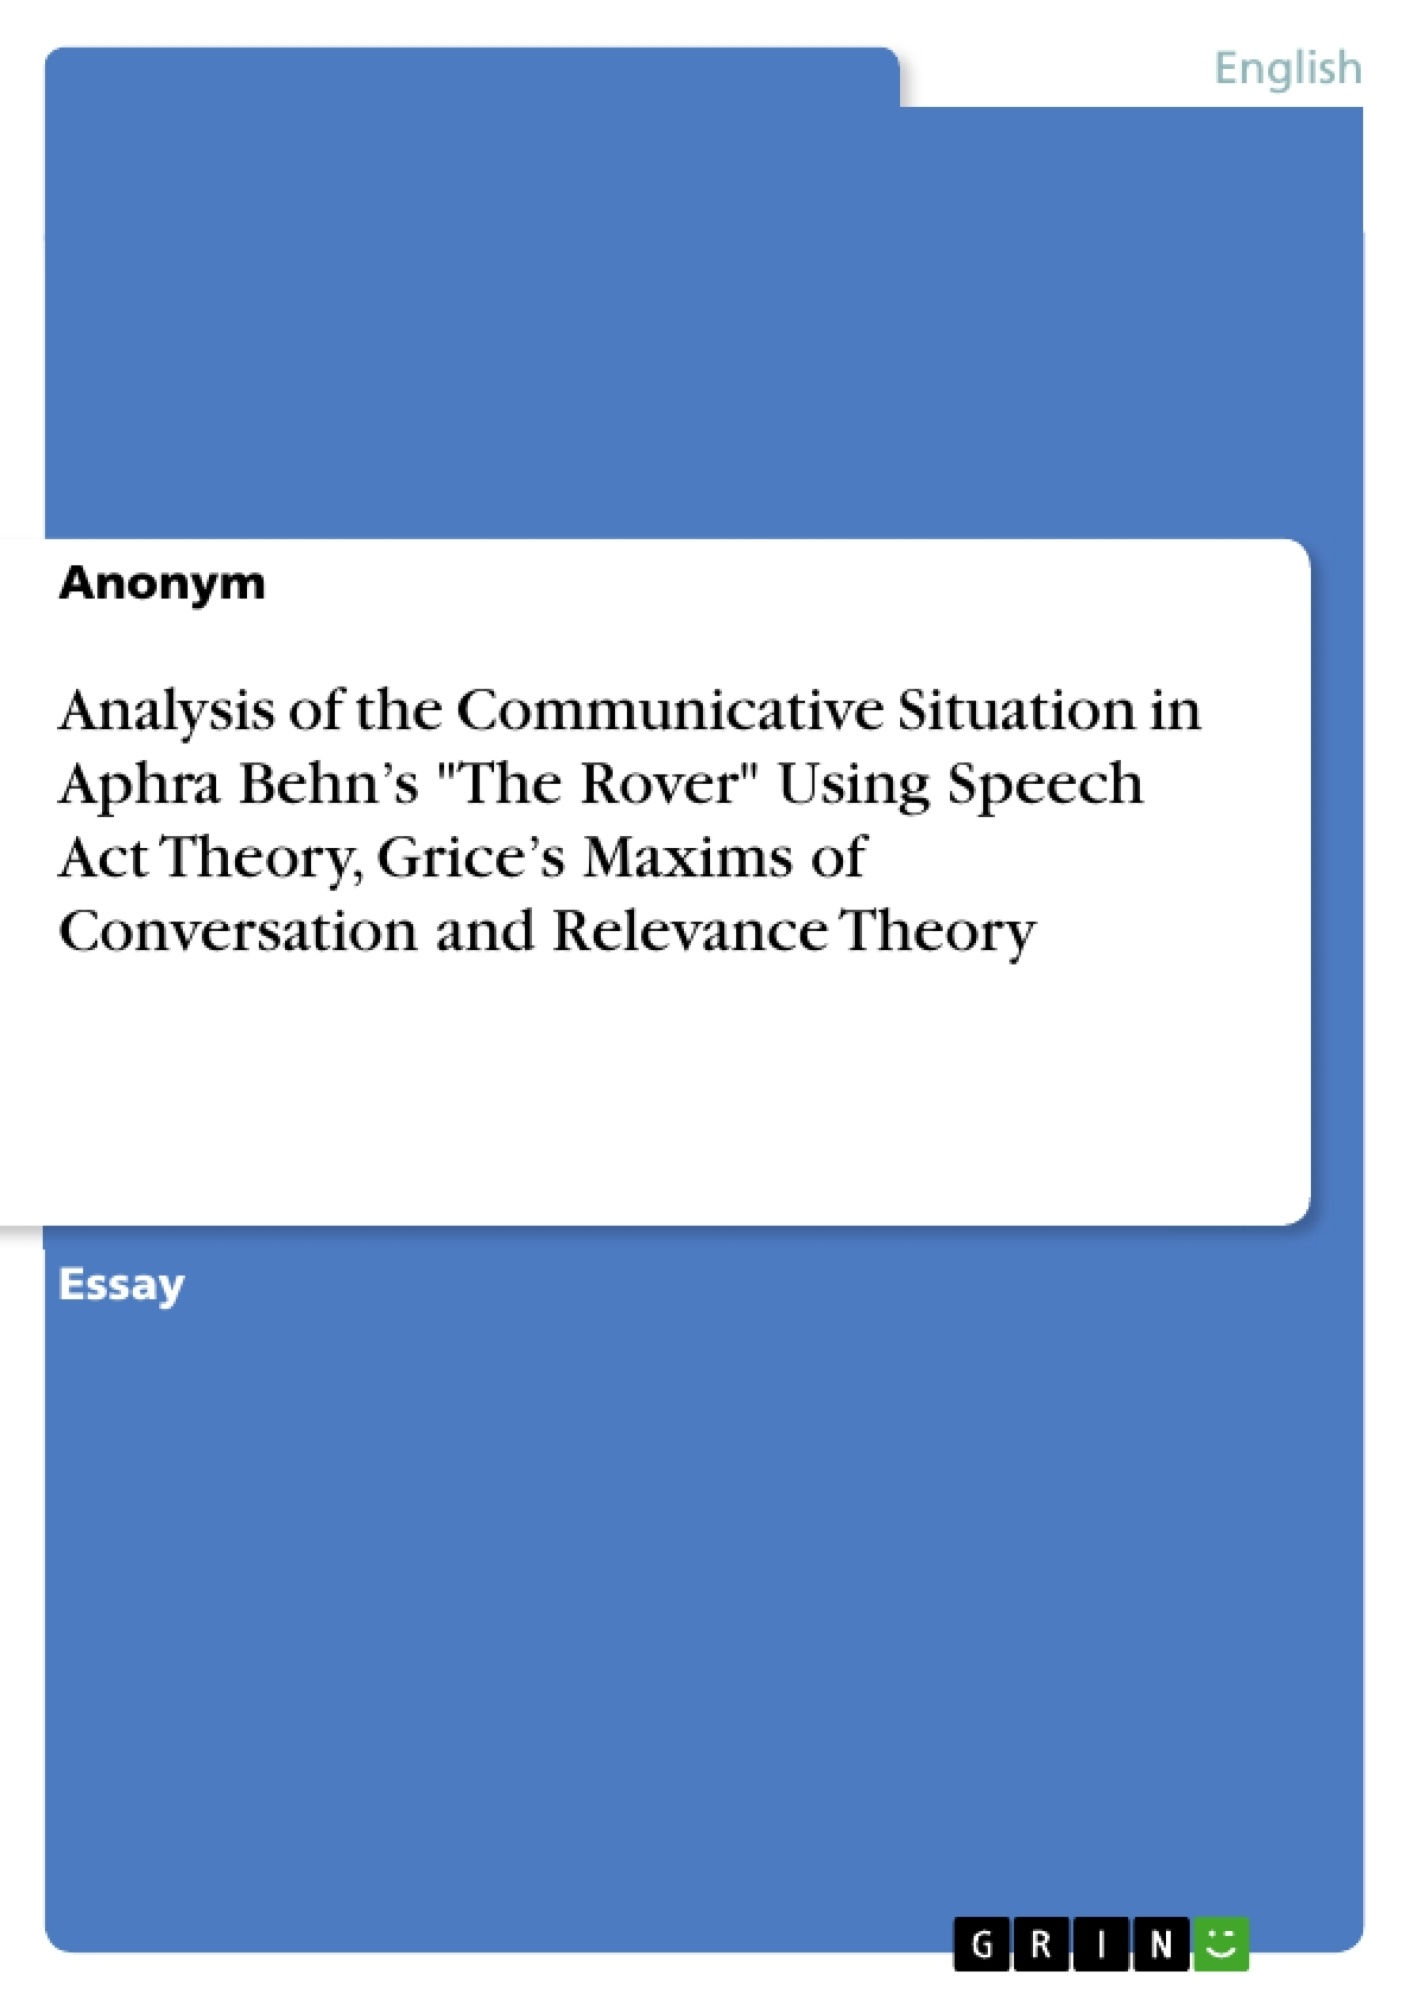 """Title: Analysis of the Communicative Situation in Aphra Behn's """"The Rover"""" Using Speech Act Theory, Grice's Maxims of Conversation and Relevance Theory"""